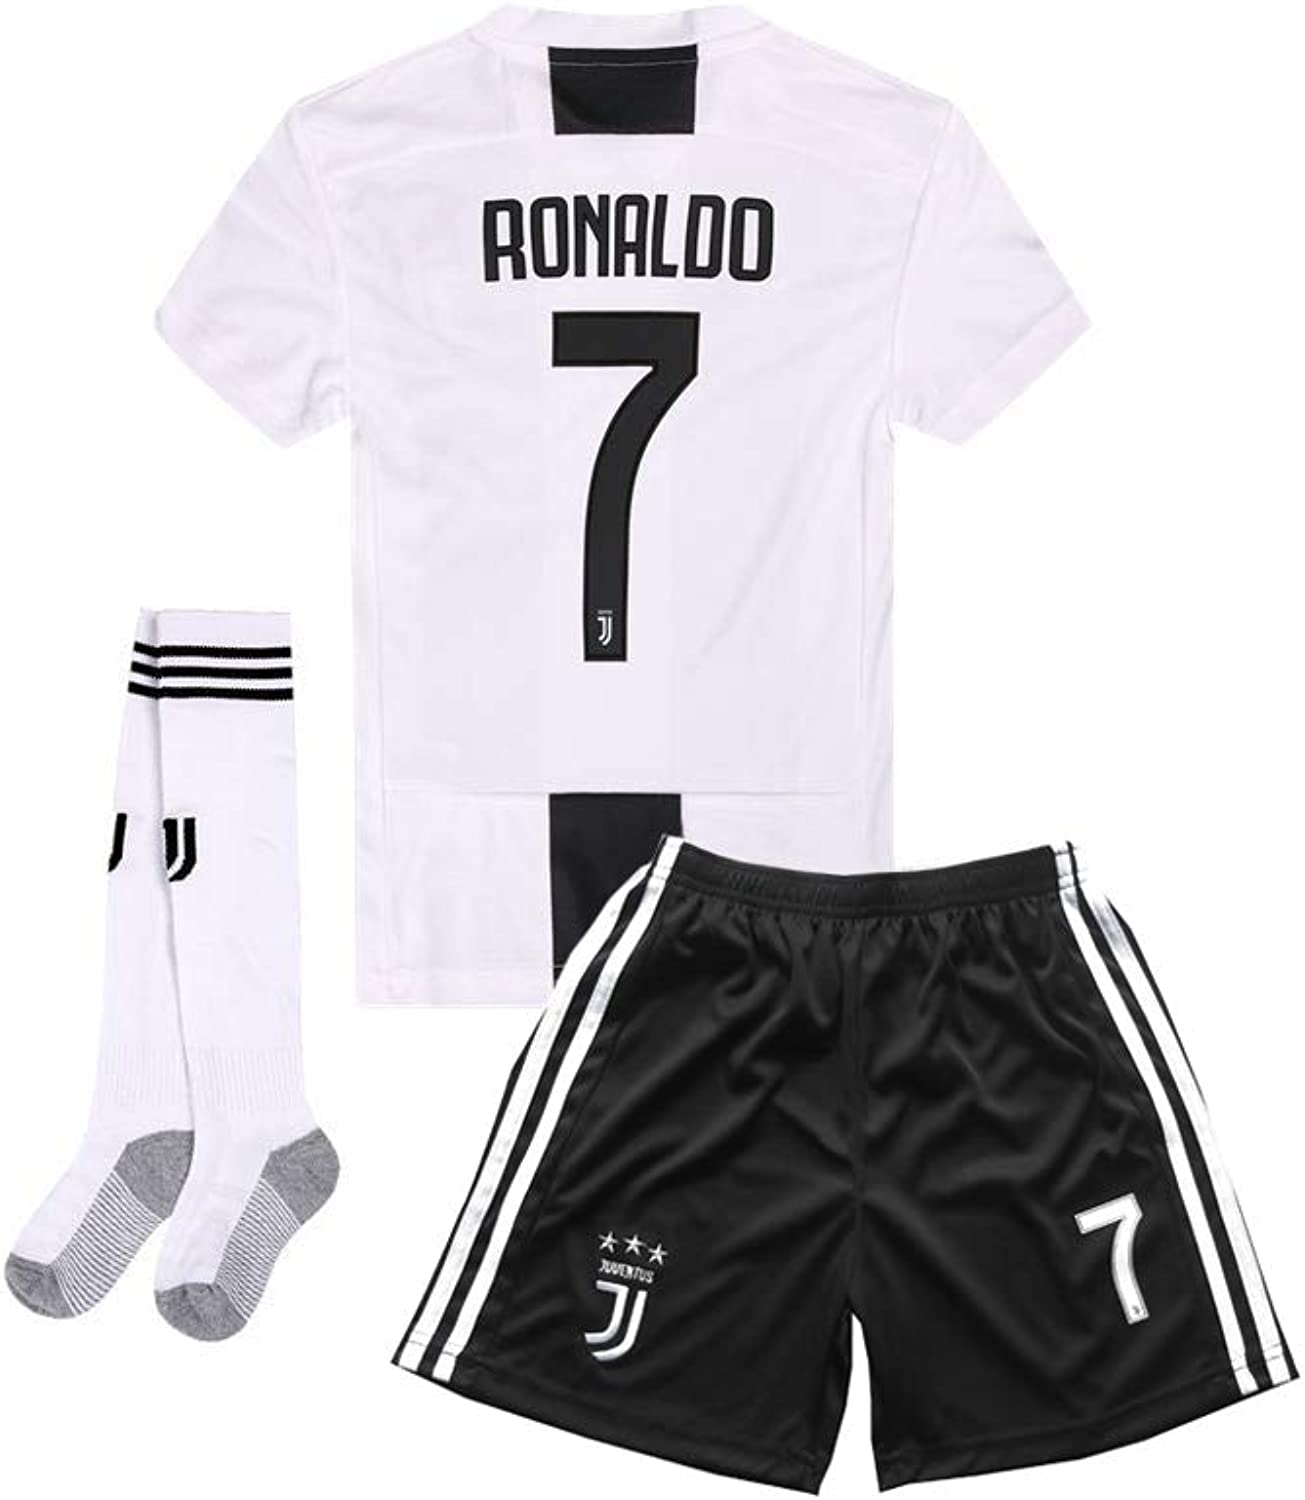 20182019 Home C Ronaldo  7 Juventus Kids Youth Soccer Jersey & Shorts & Socks White